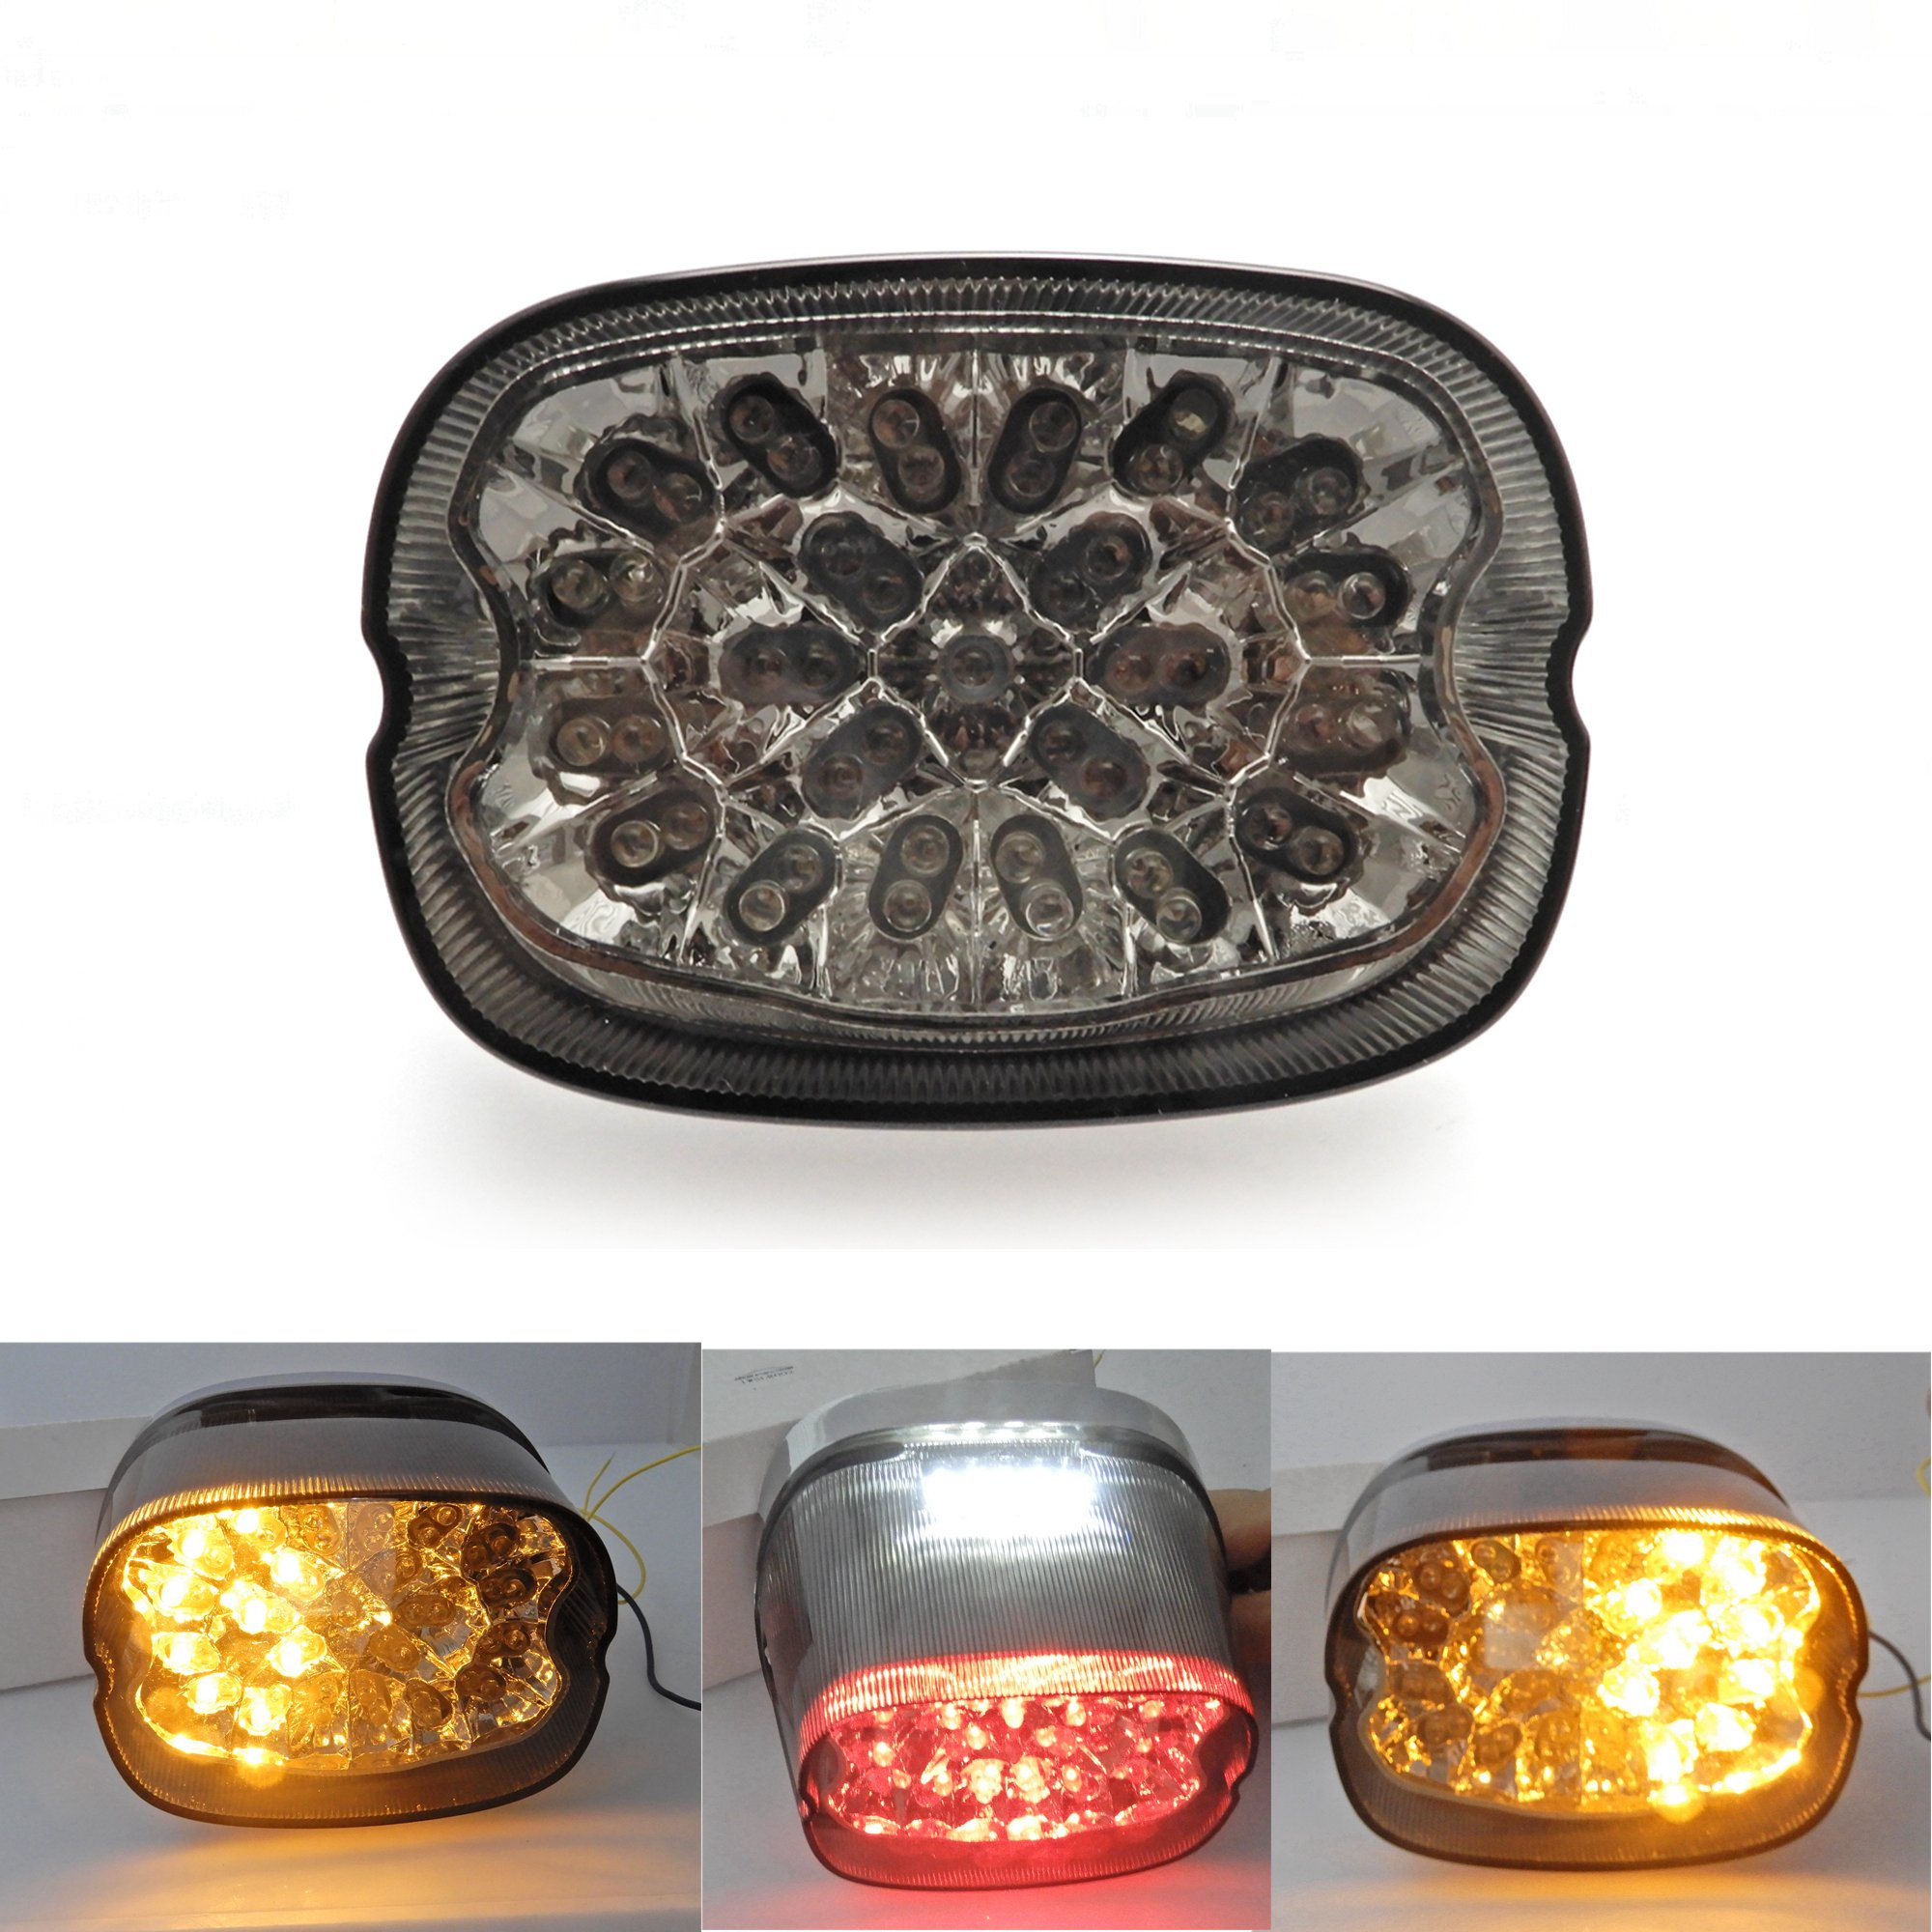 LED Tail Light Turn Signals for Sportster XL FLHR FLHRCI FXD Dyna Road King Electra Glide Brake Park Light Stop Lamp by Issyzone (Image #1)